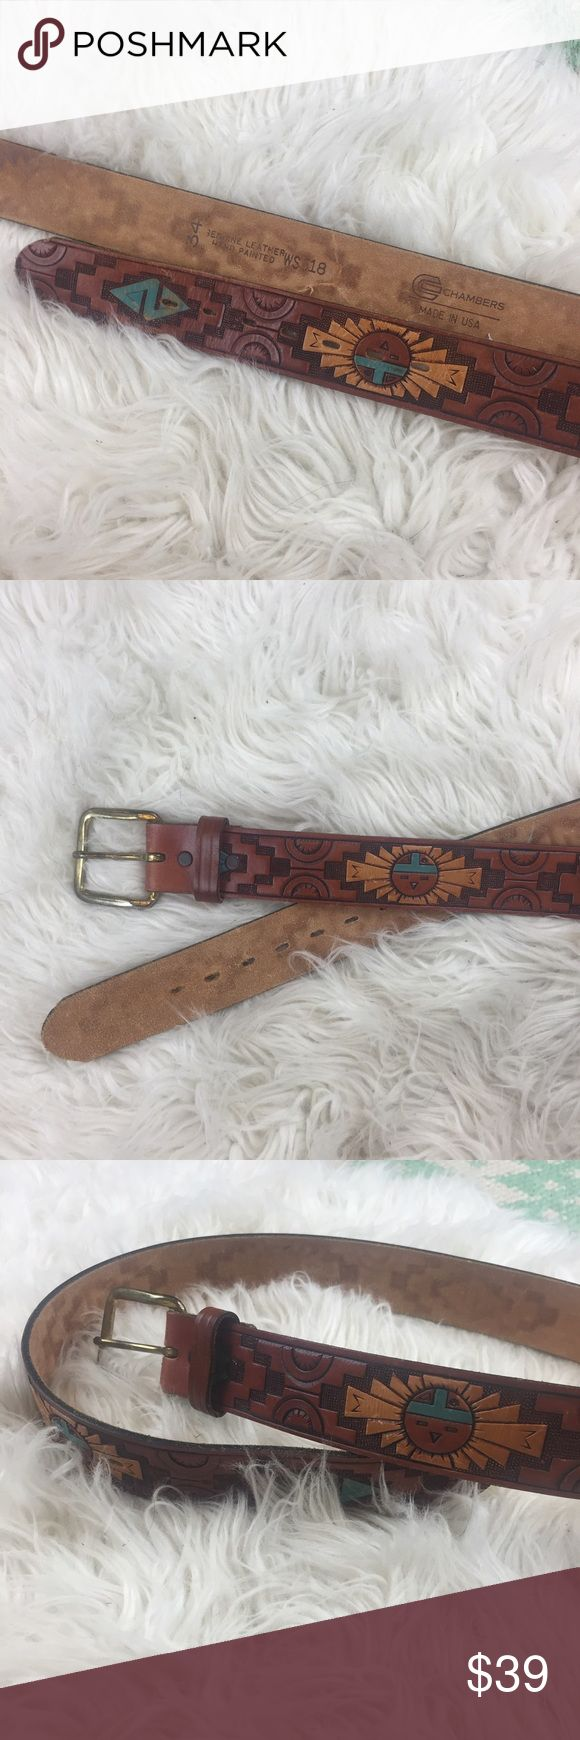 """VINTAGE Southwestern Aztec Tribal Leather Belt Genuine leather belt with Aztec designs and texture and hand painted aqua and yellow accents. Made in the USA in the 1970's. Leather shows some light scuff marks and buckle shows light tarnishing. In overall great vintage condition. Measures 36"""" when buckled at loosest. 💫 Smoke free home. Offers are welcome! No trades, please. Bundle multiple items for a discount and only pay for shipping once! Vintage Accessories Belts"""